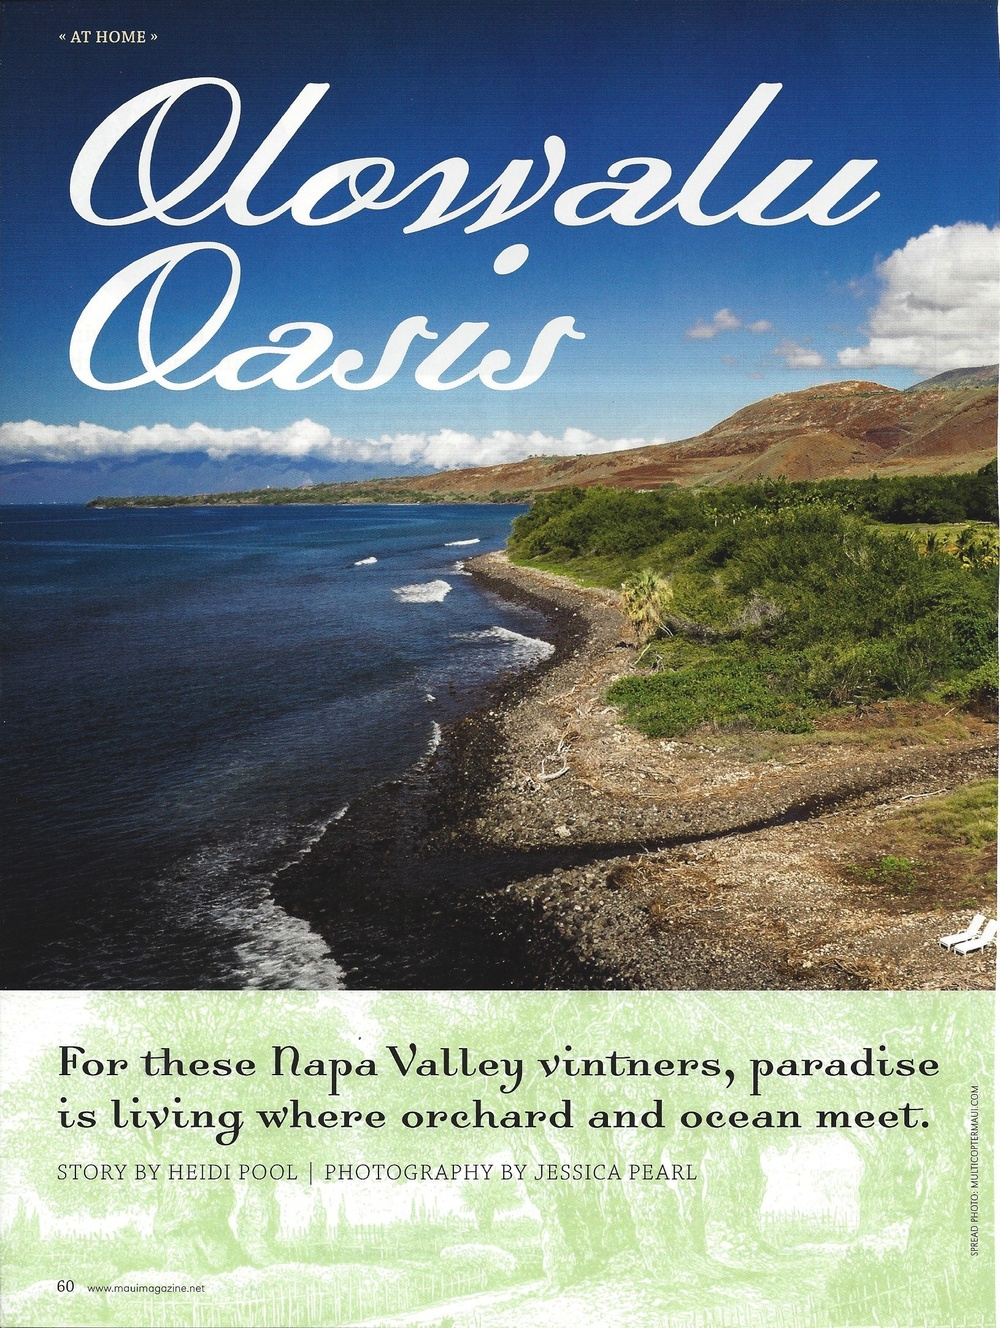 http://www.mauimagazine.net/Maui-Magazine/July-August-2014/Olowalu-Oasis/?cparticle=1&siarticle=0